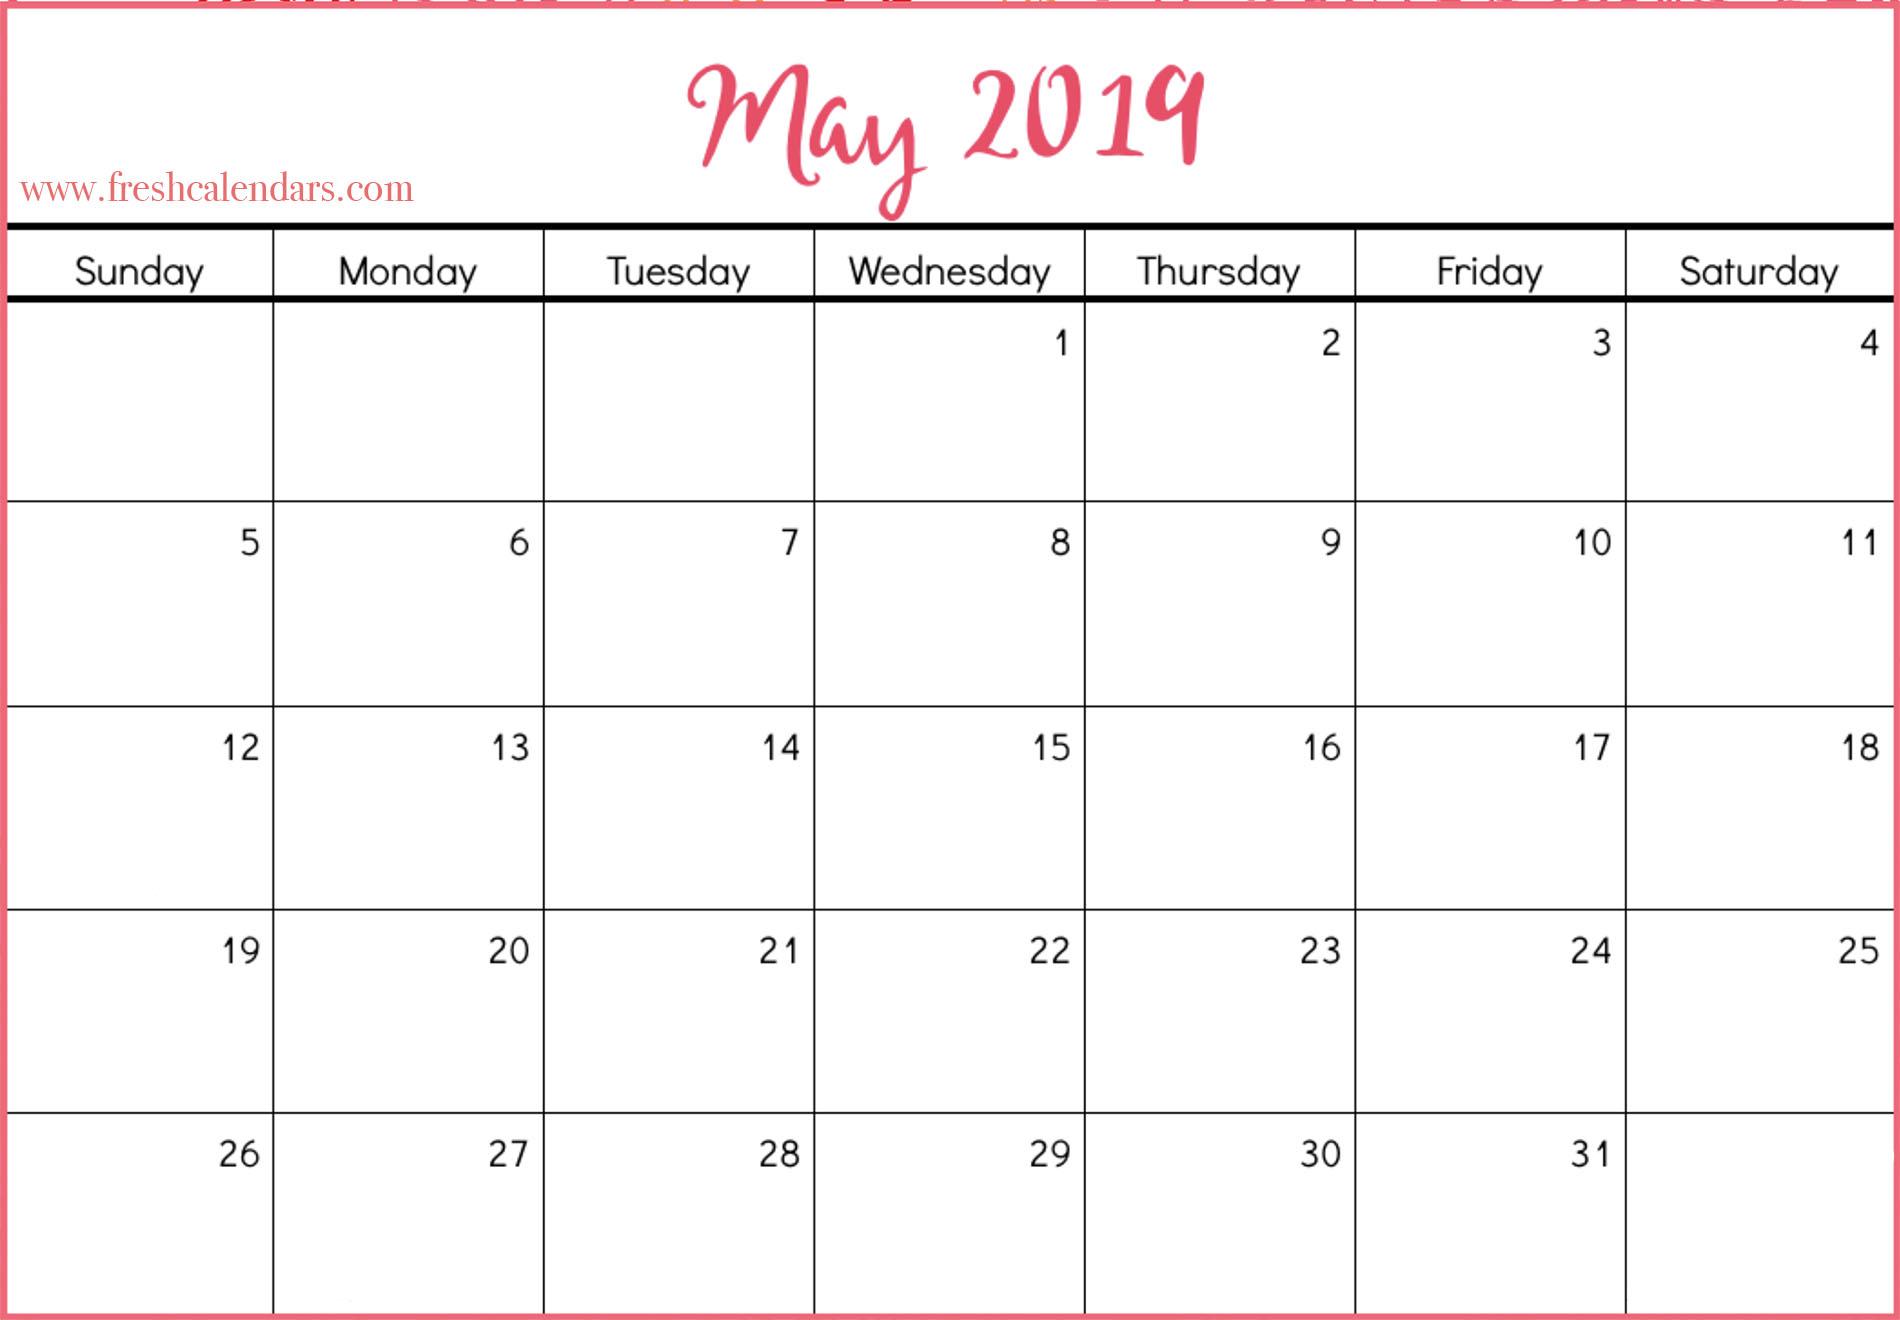 May 2019 Calendar Printable Template